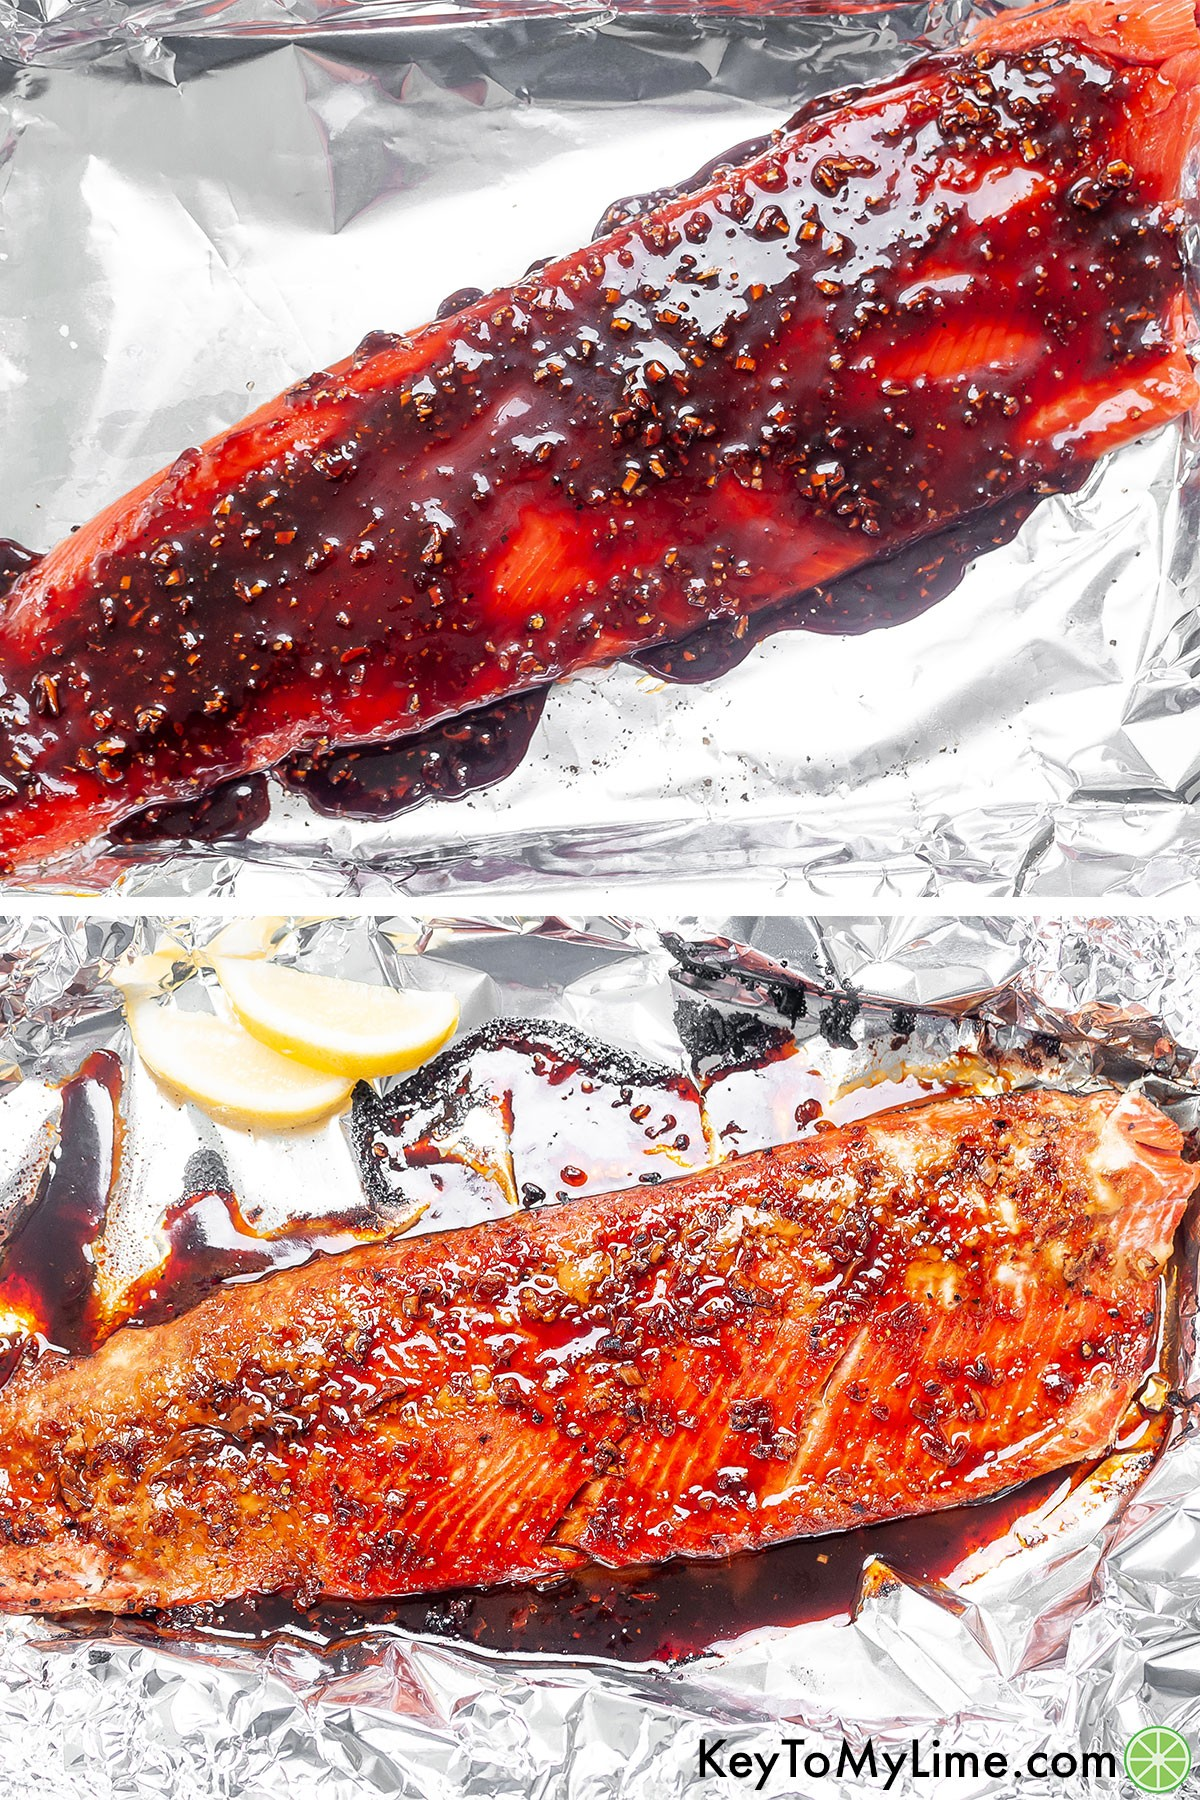 A process collage showing glazed salmon before and after baking.